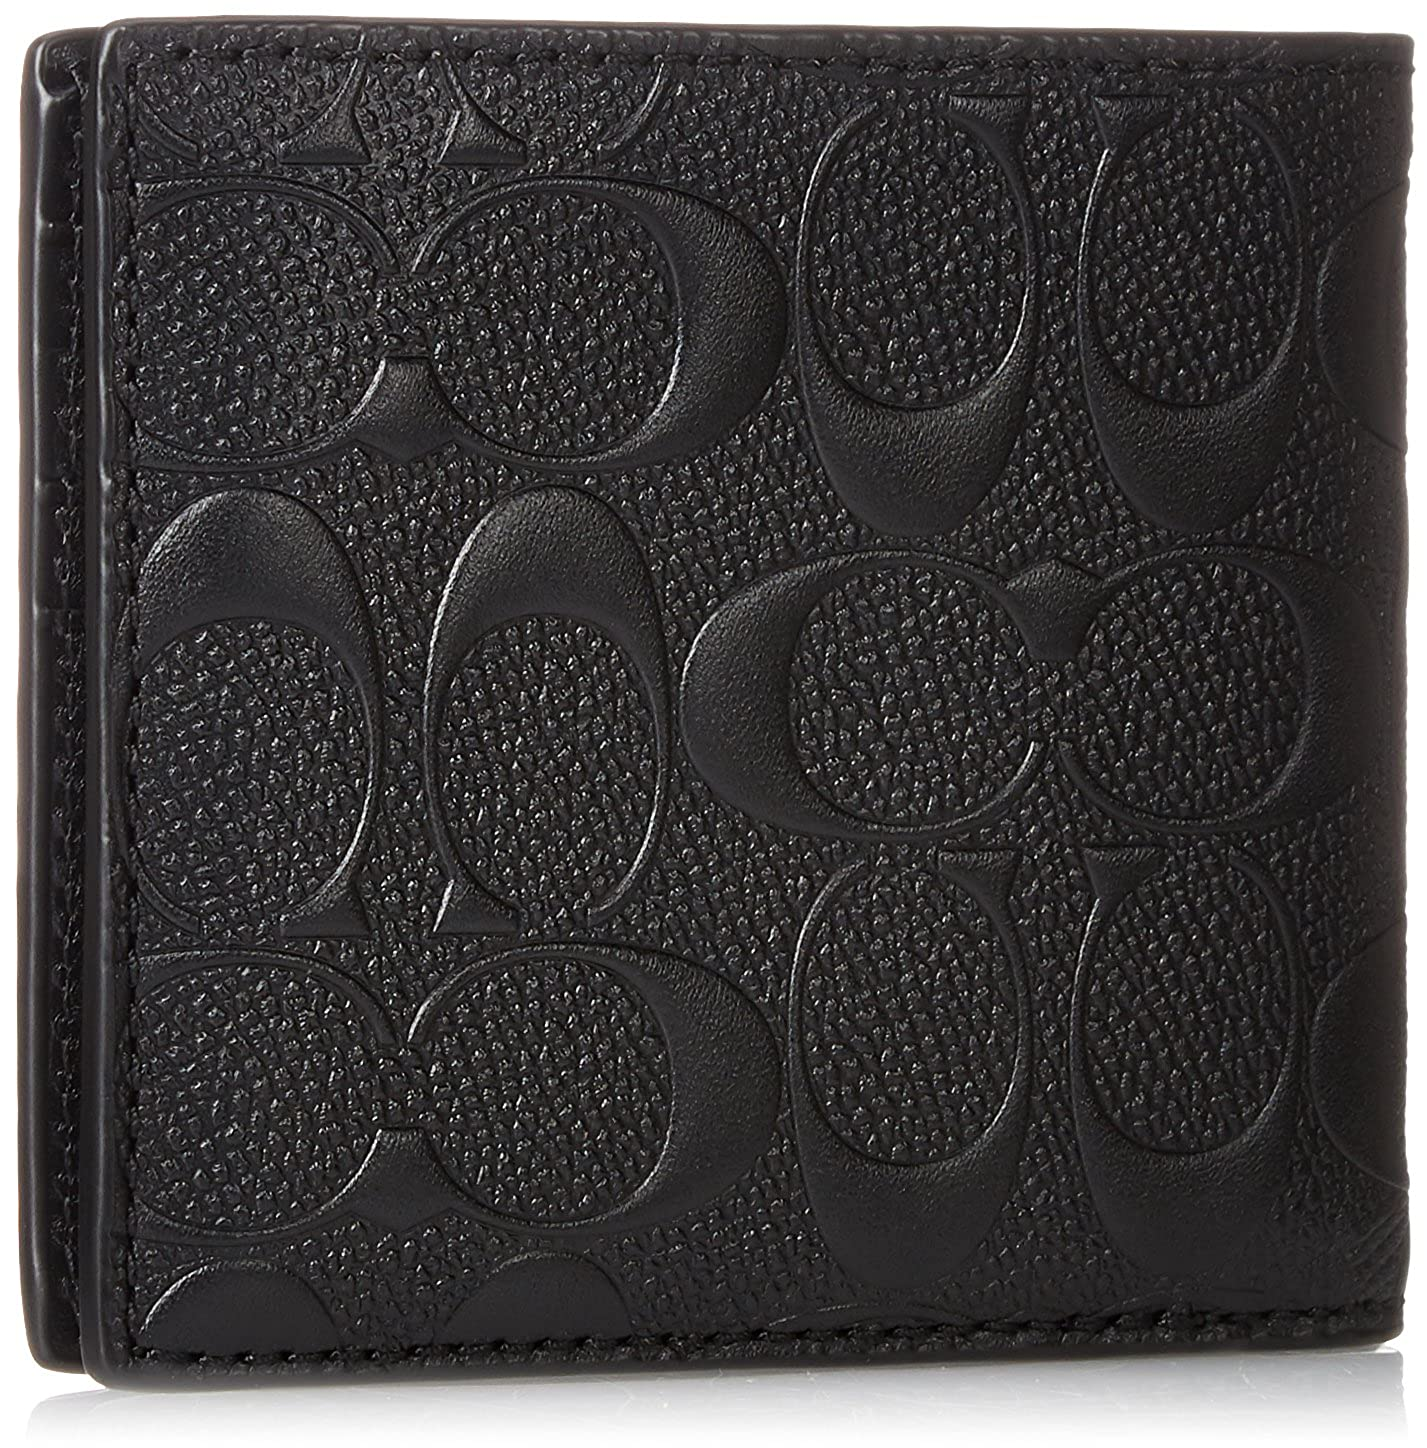 9ec9aad8a1797 Amazon.com  COACH COMPACT ID WALLET IN SIGNATURE CROSSGRAIN LEATHER ...